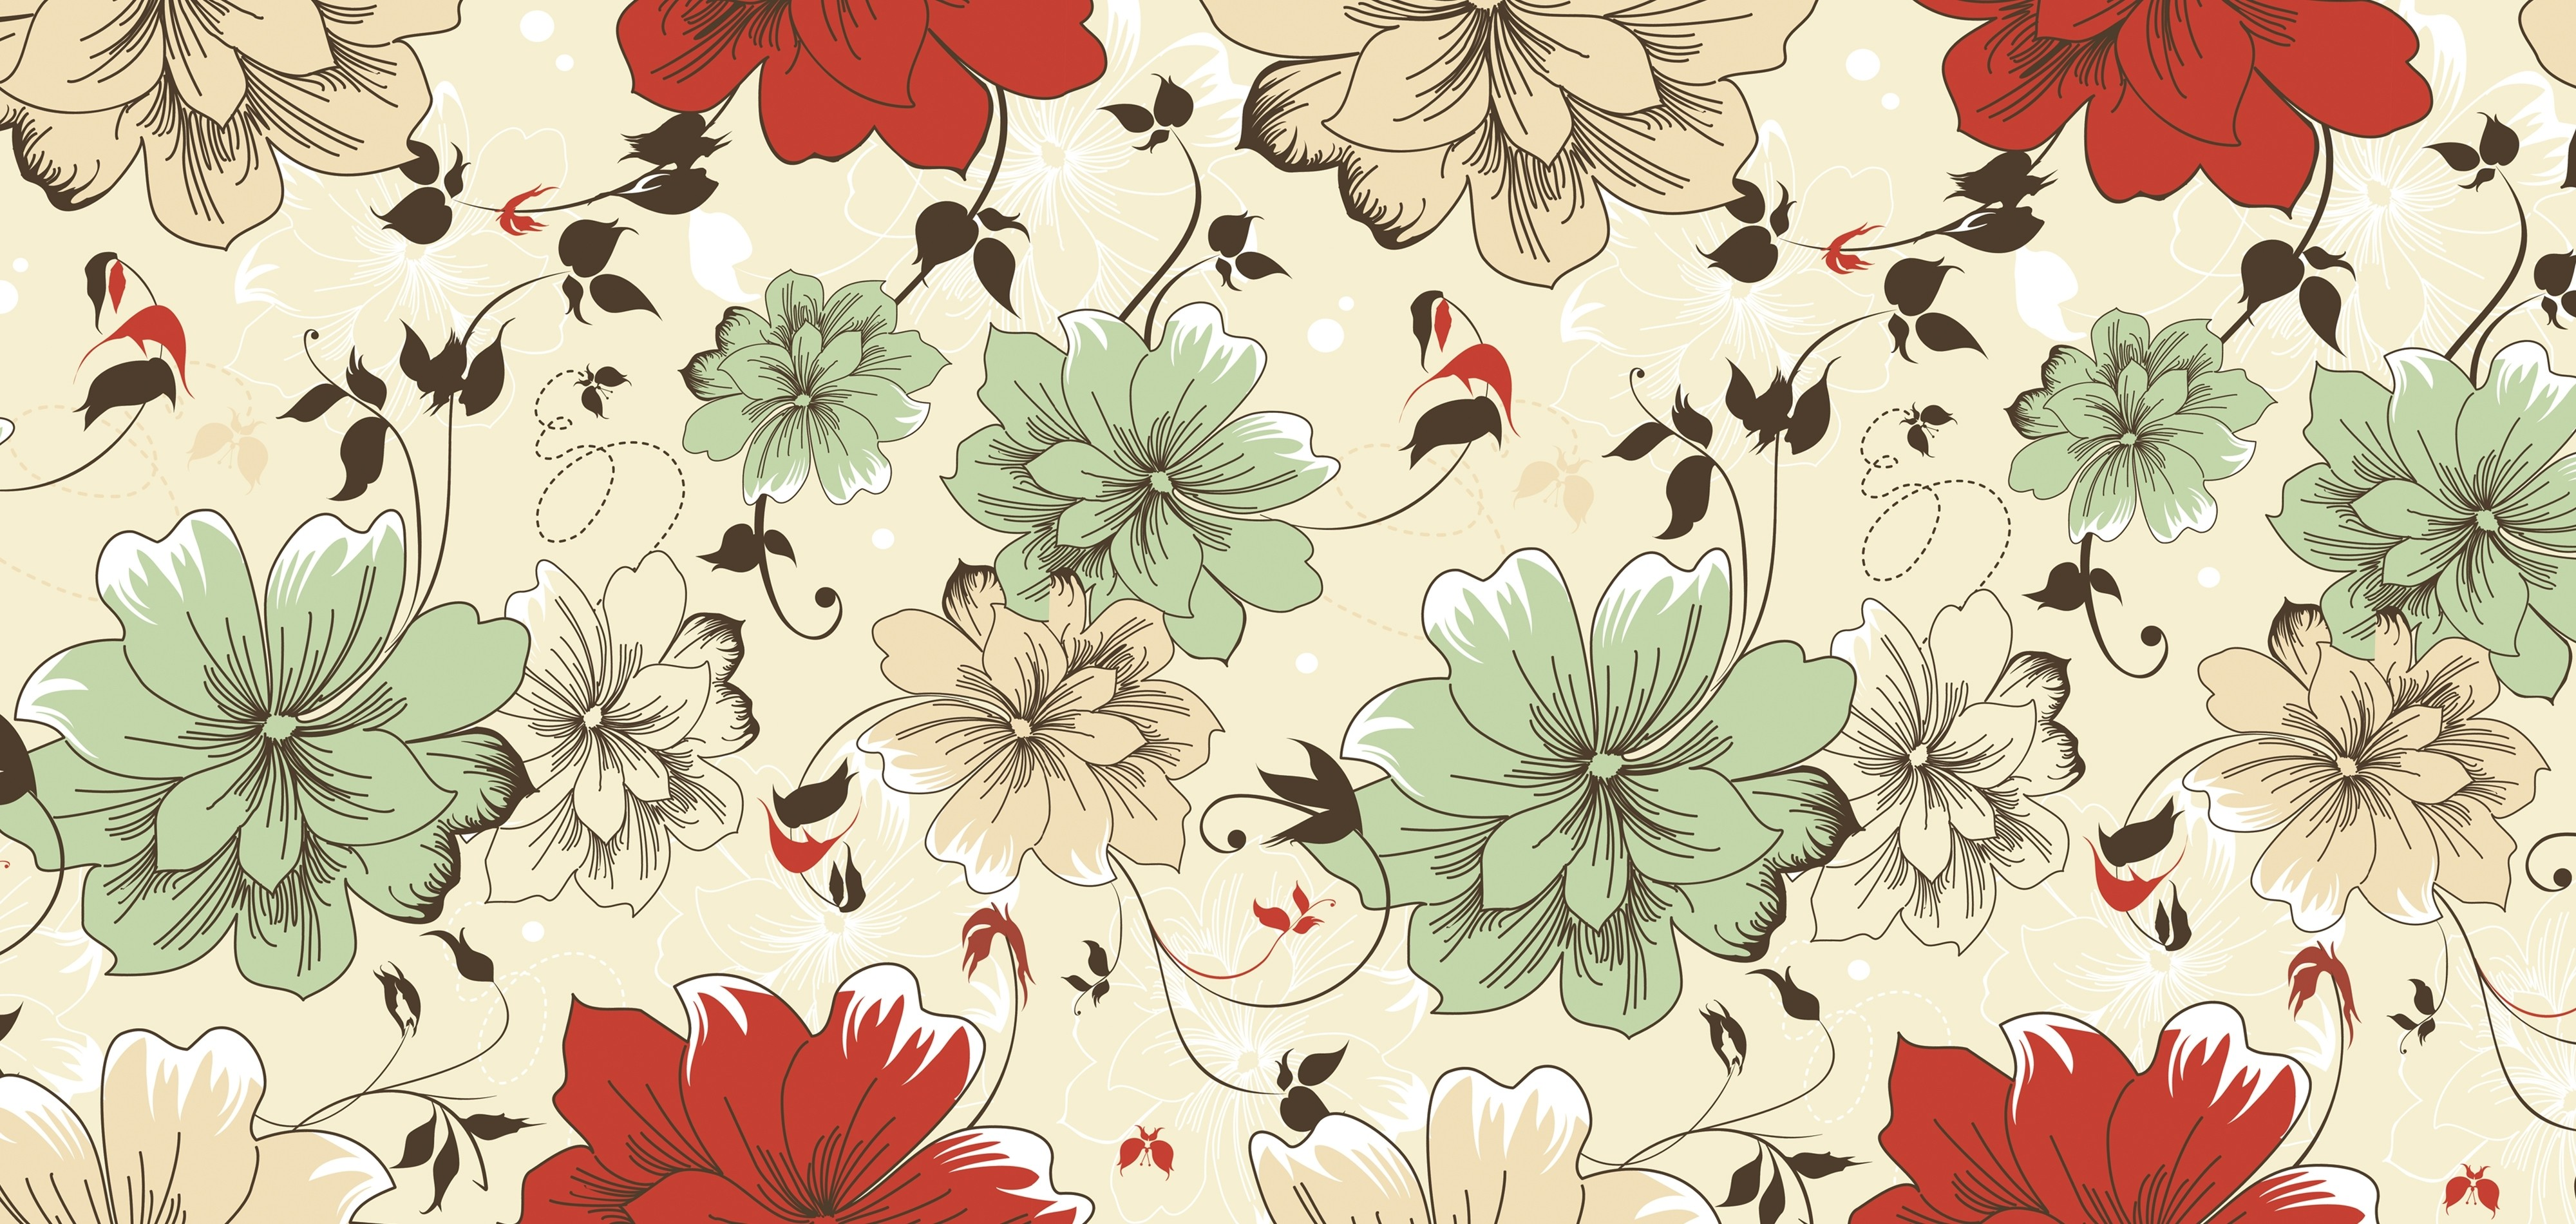 Free Download Wallpaper Vintage Floral Wallpapers 4000x1900 For